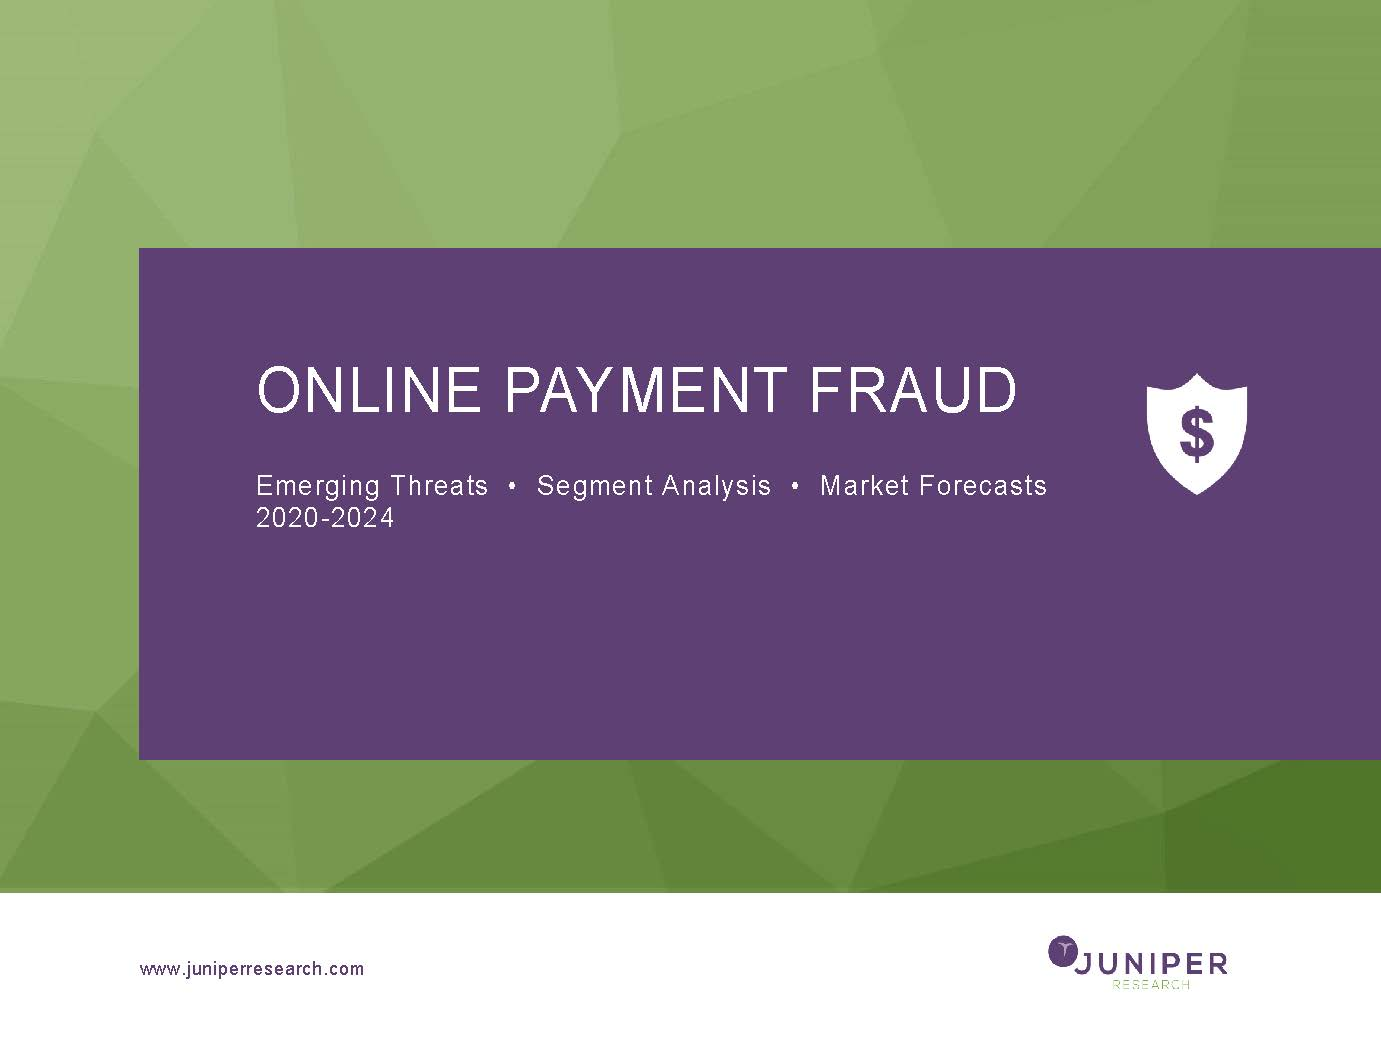 Online Payment Fraud: Emerging Threats, Segment Analysis & Market Forecasts 2020-2024